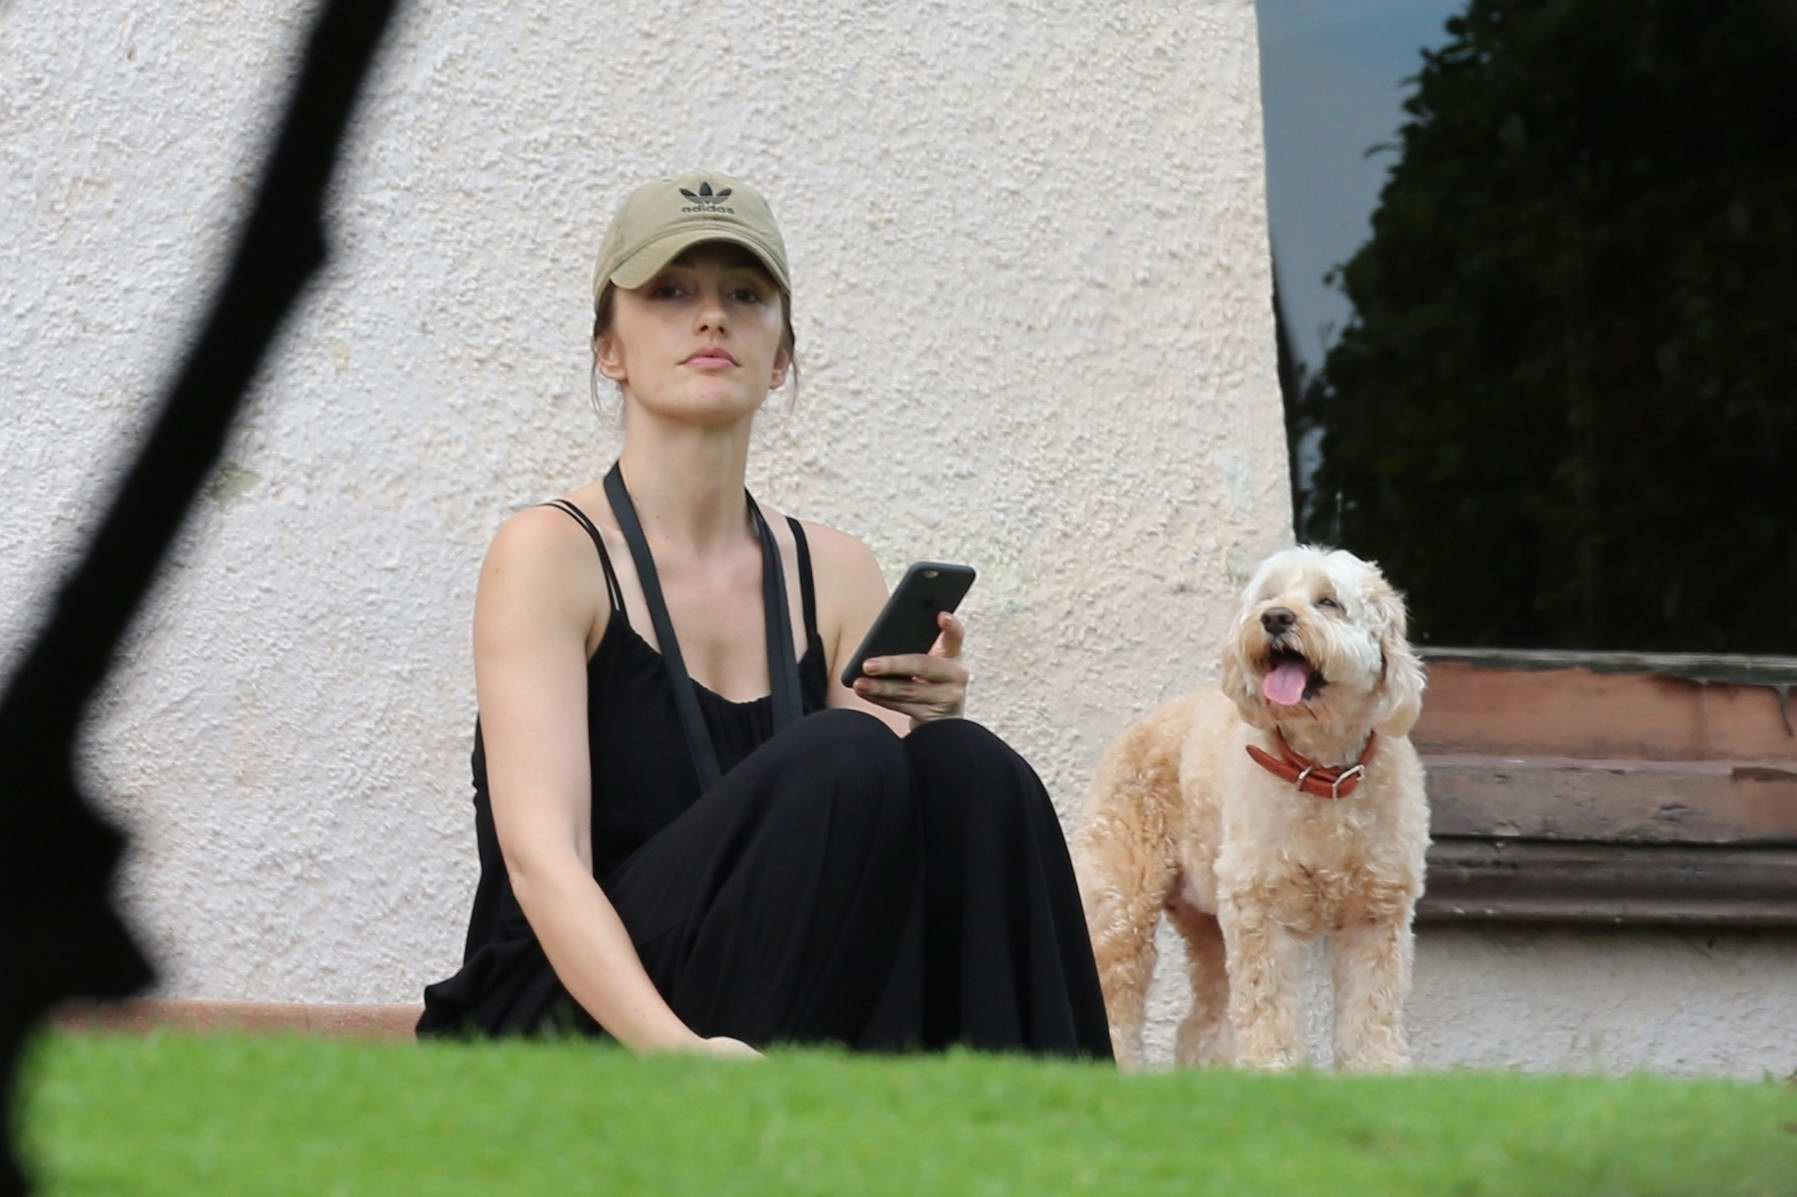 Minka Kelly spends her afternoon at a dog park with her Dogs in Los Angeles